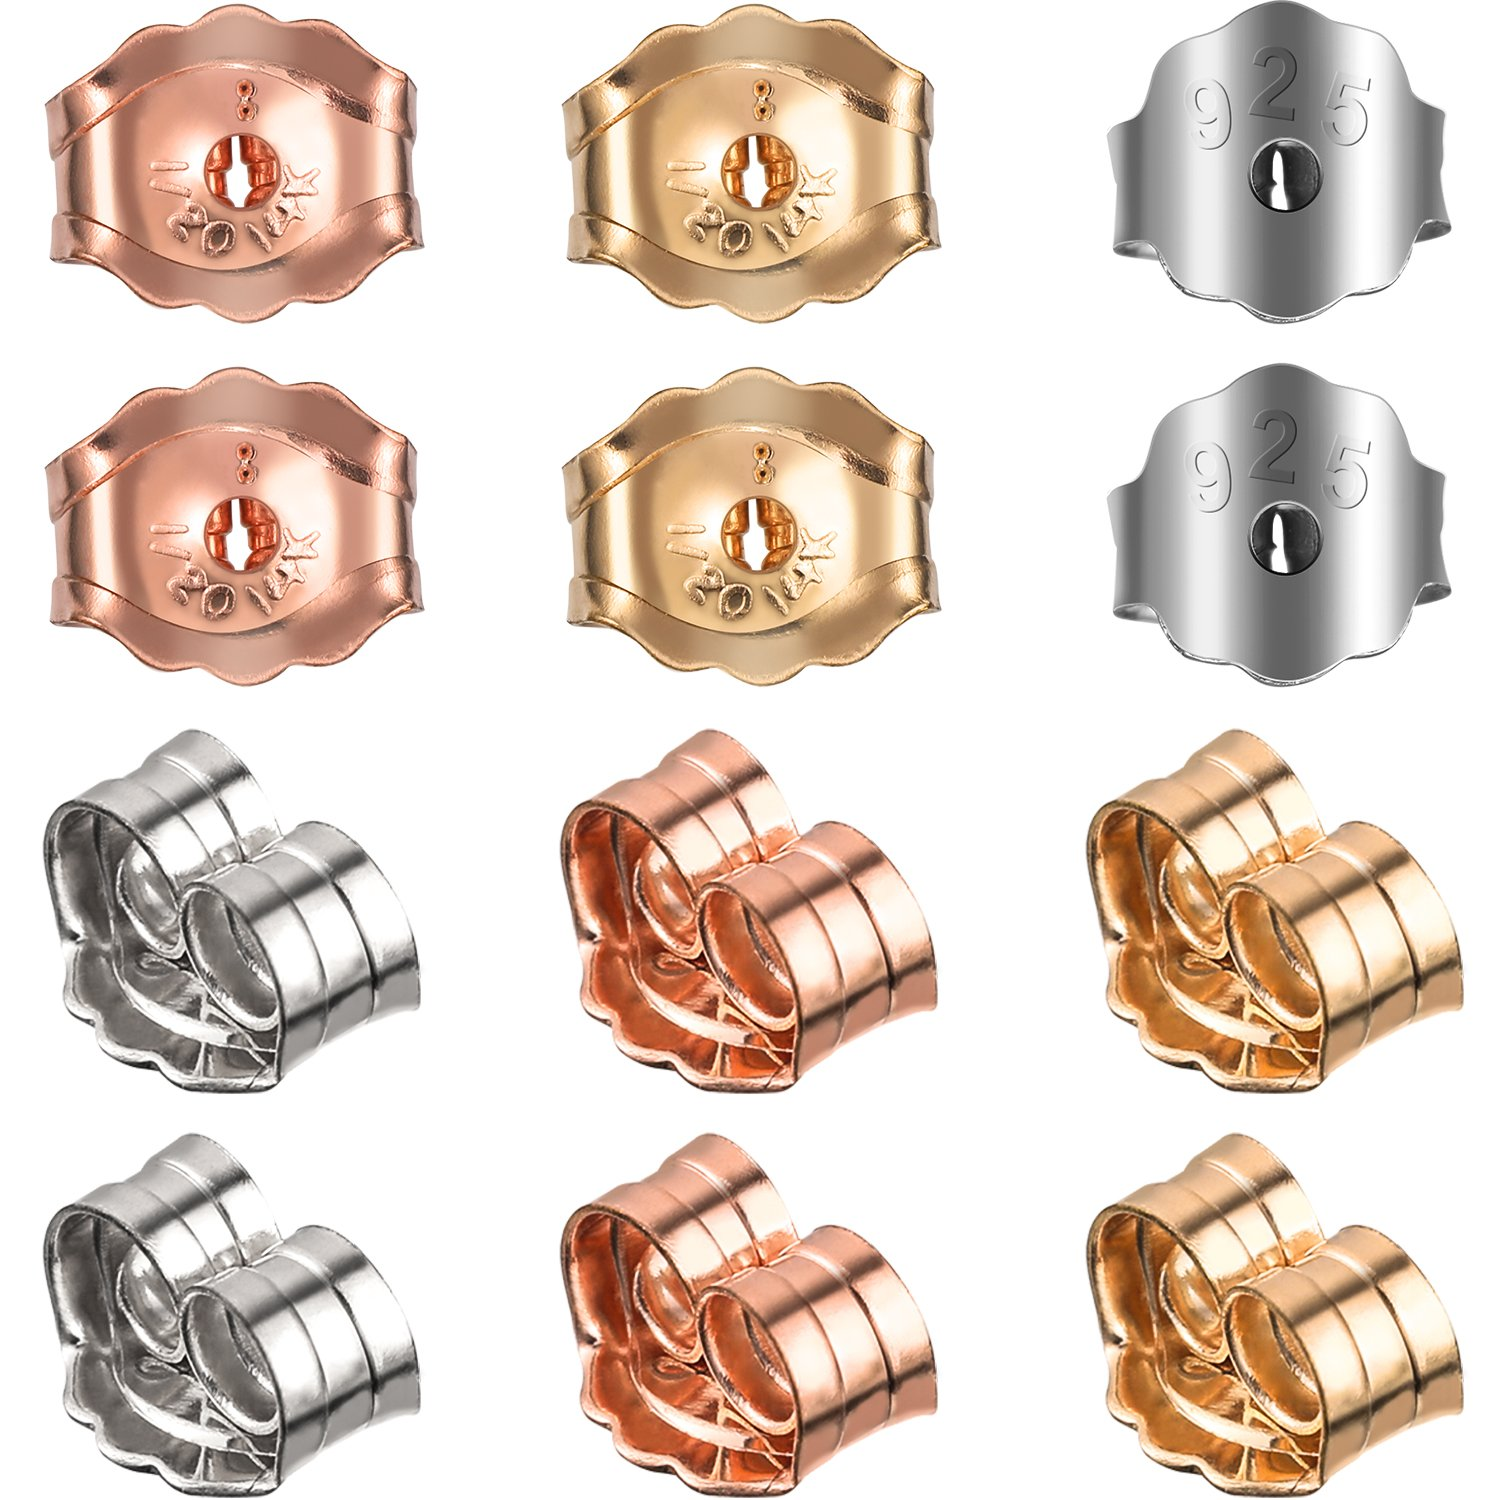 TecUnite 12 Pieces Replacement Gold Silver and Rose Gold Earring Backs, 3 Colors 4336817440